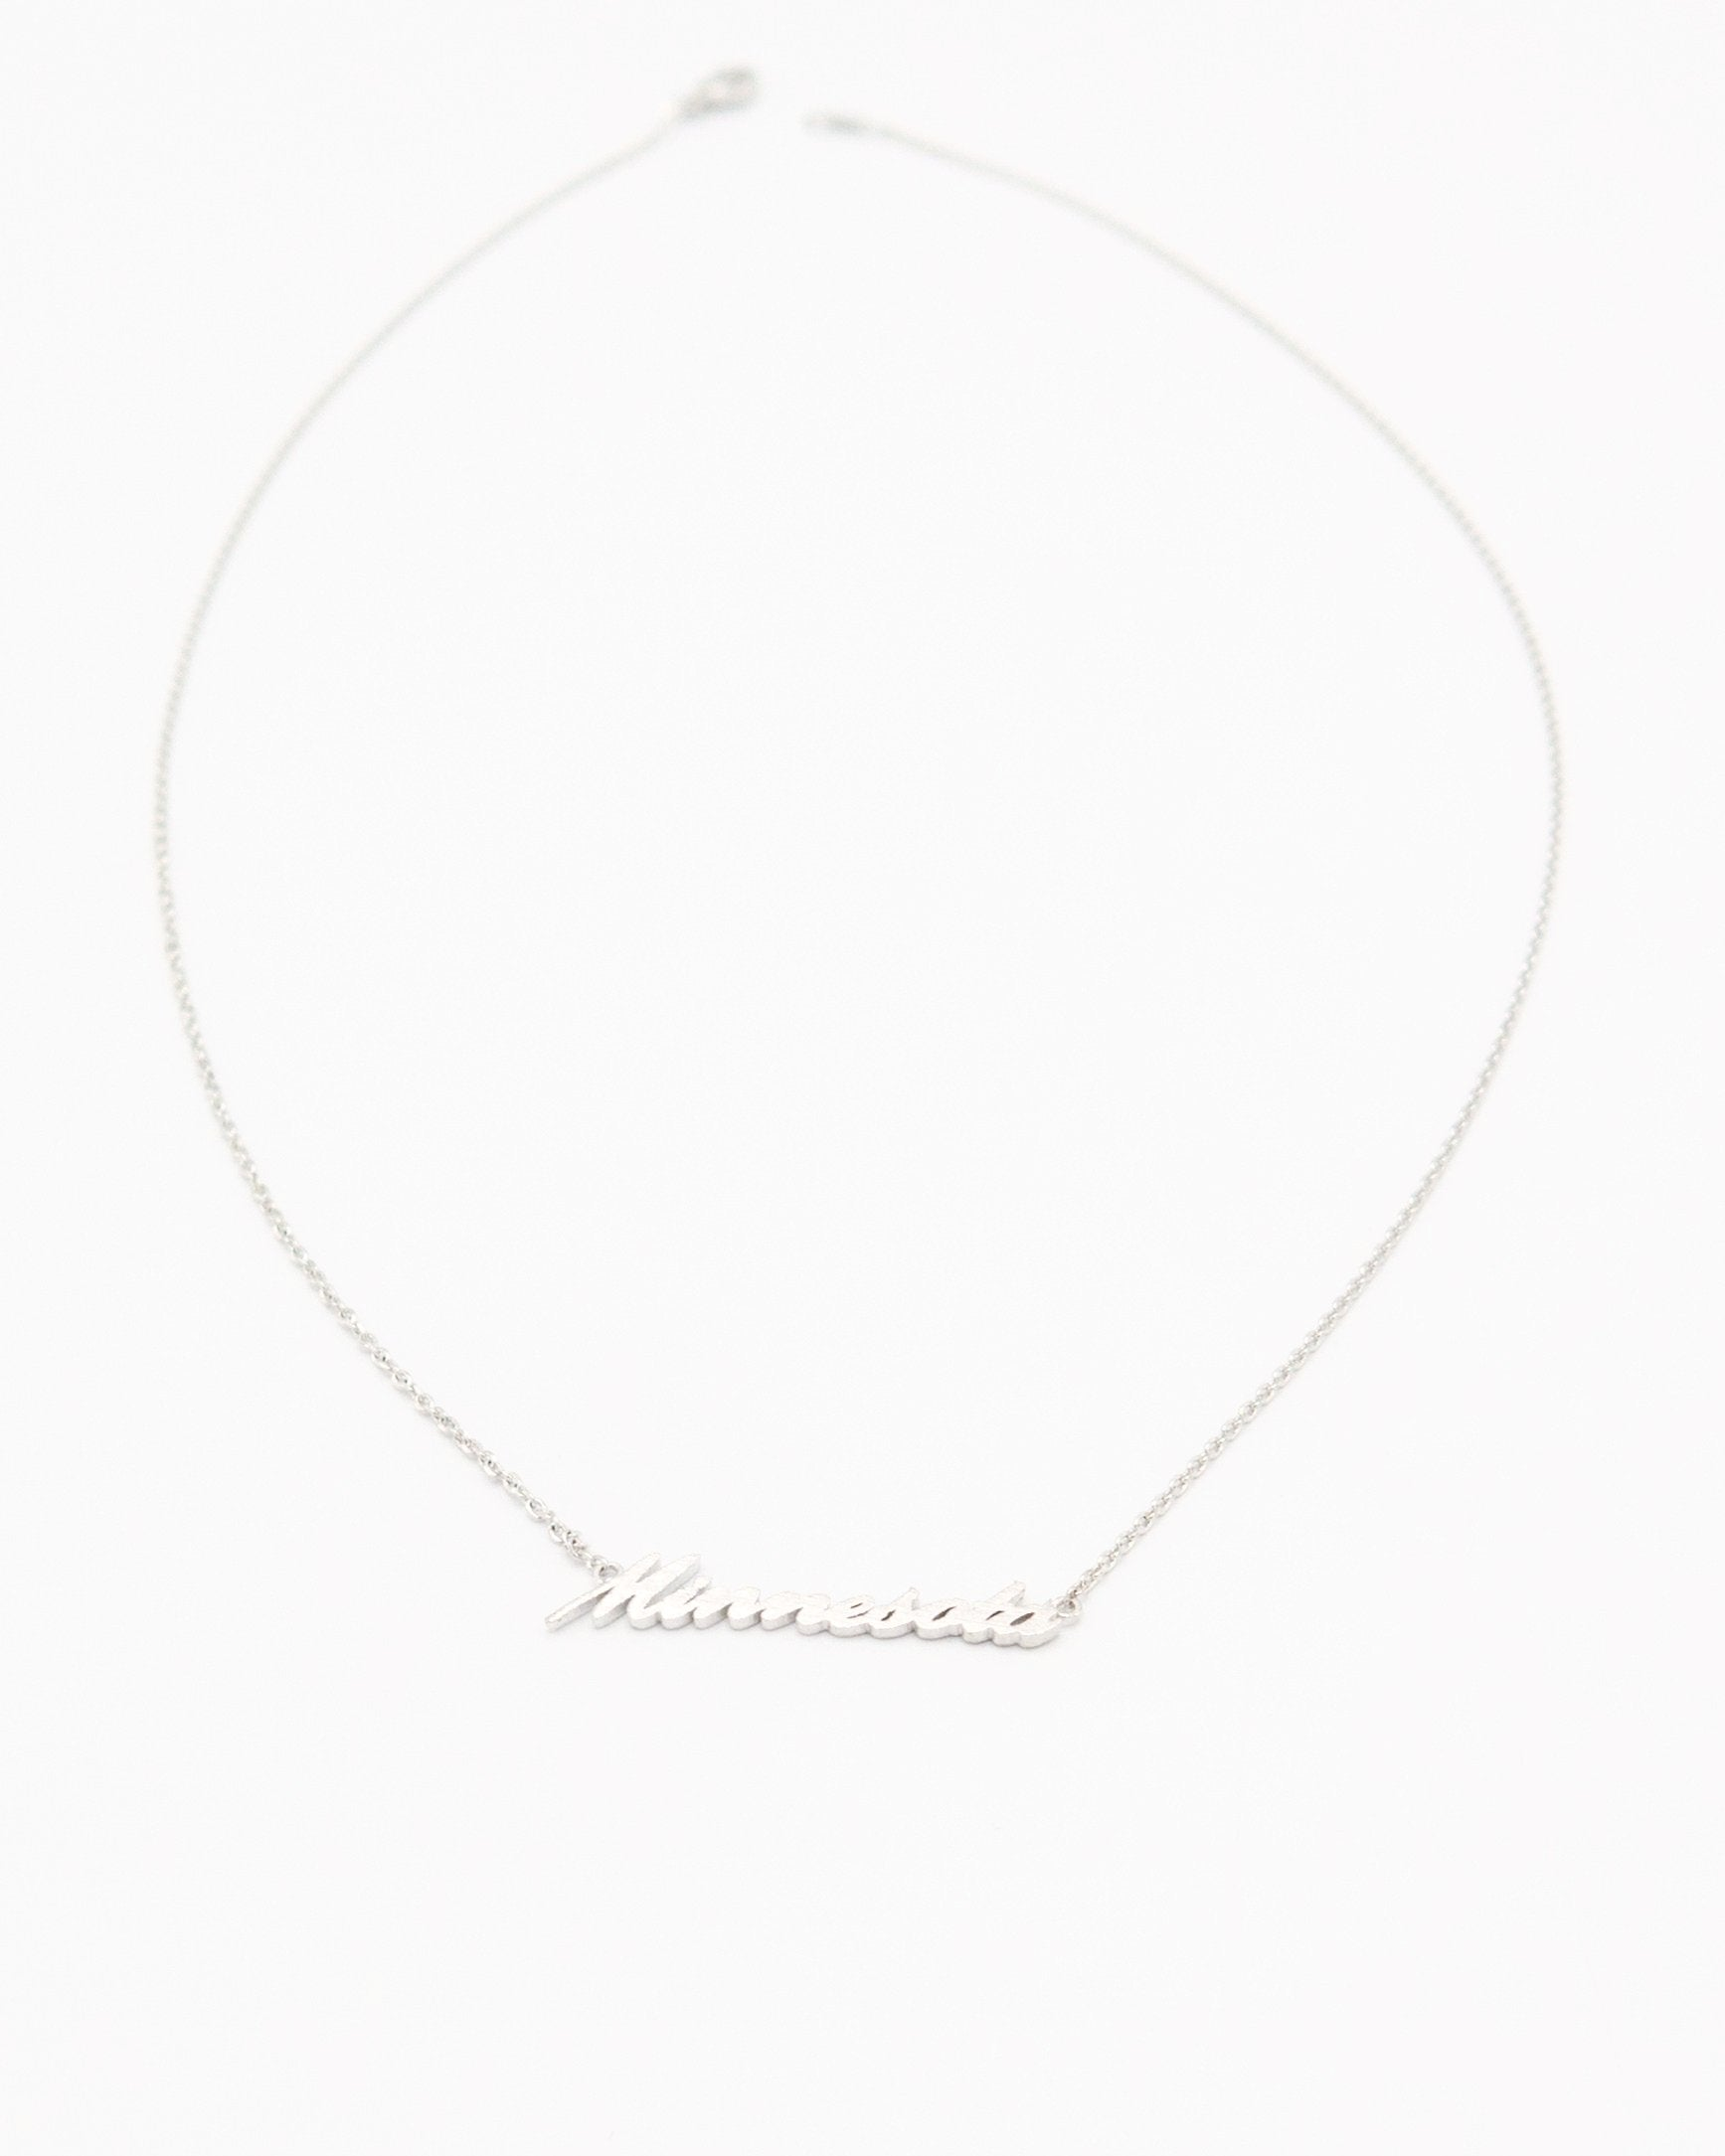 Minnesota Word Necklace in silver